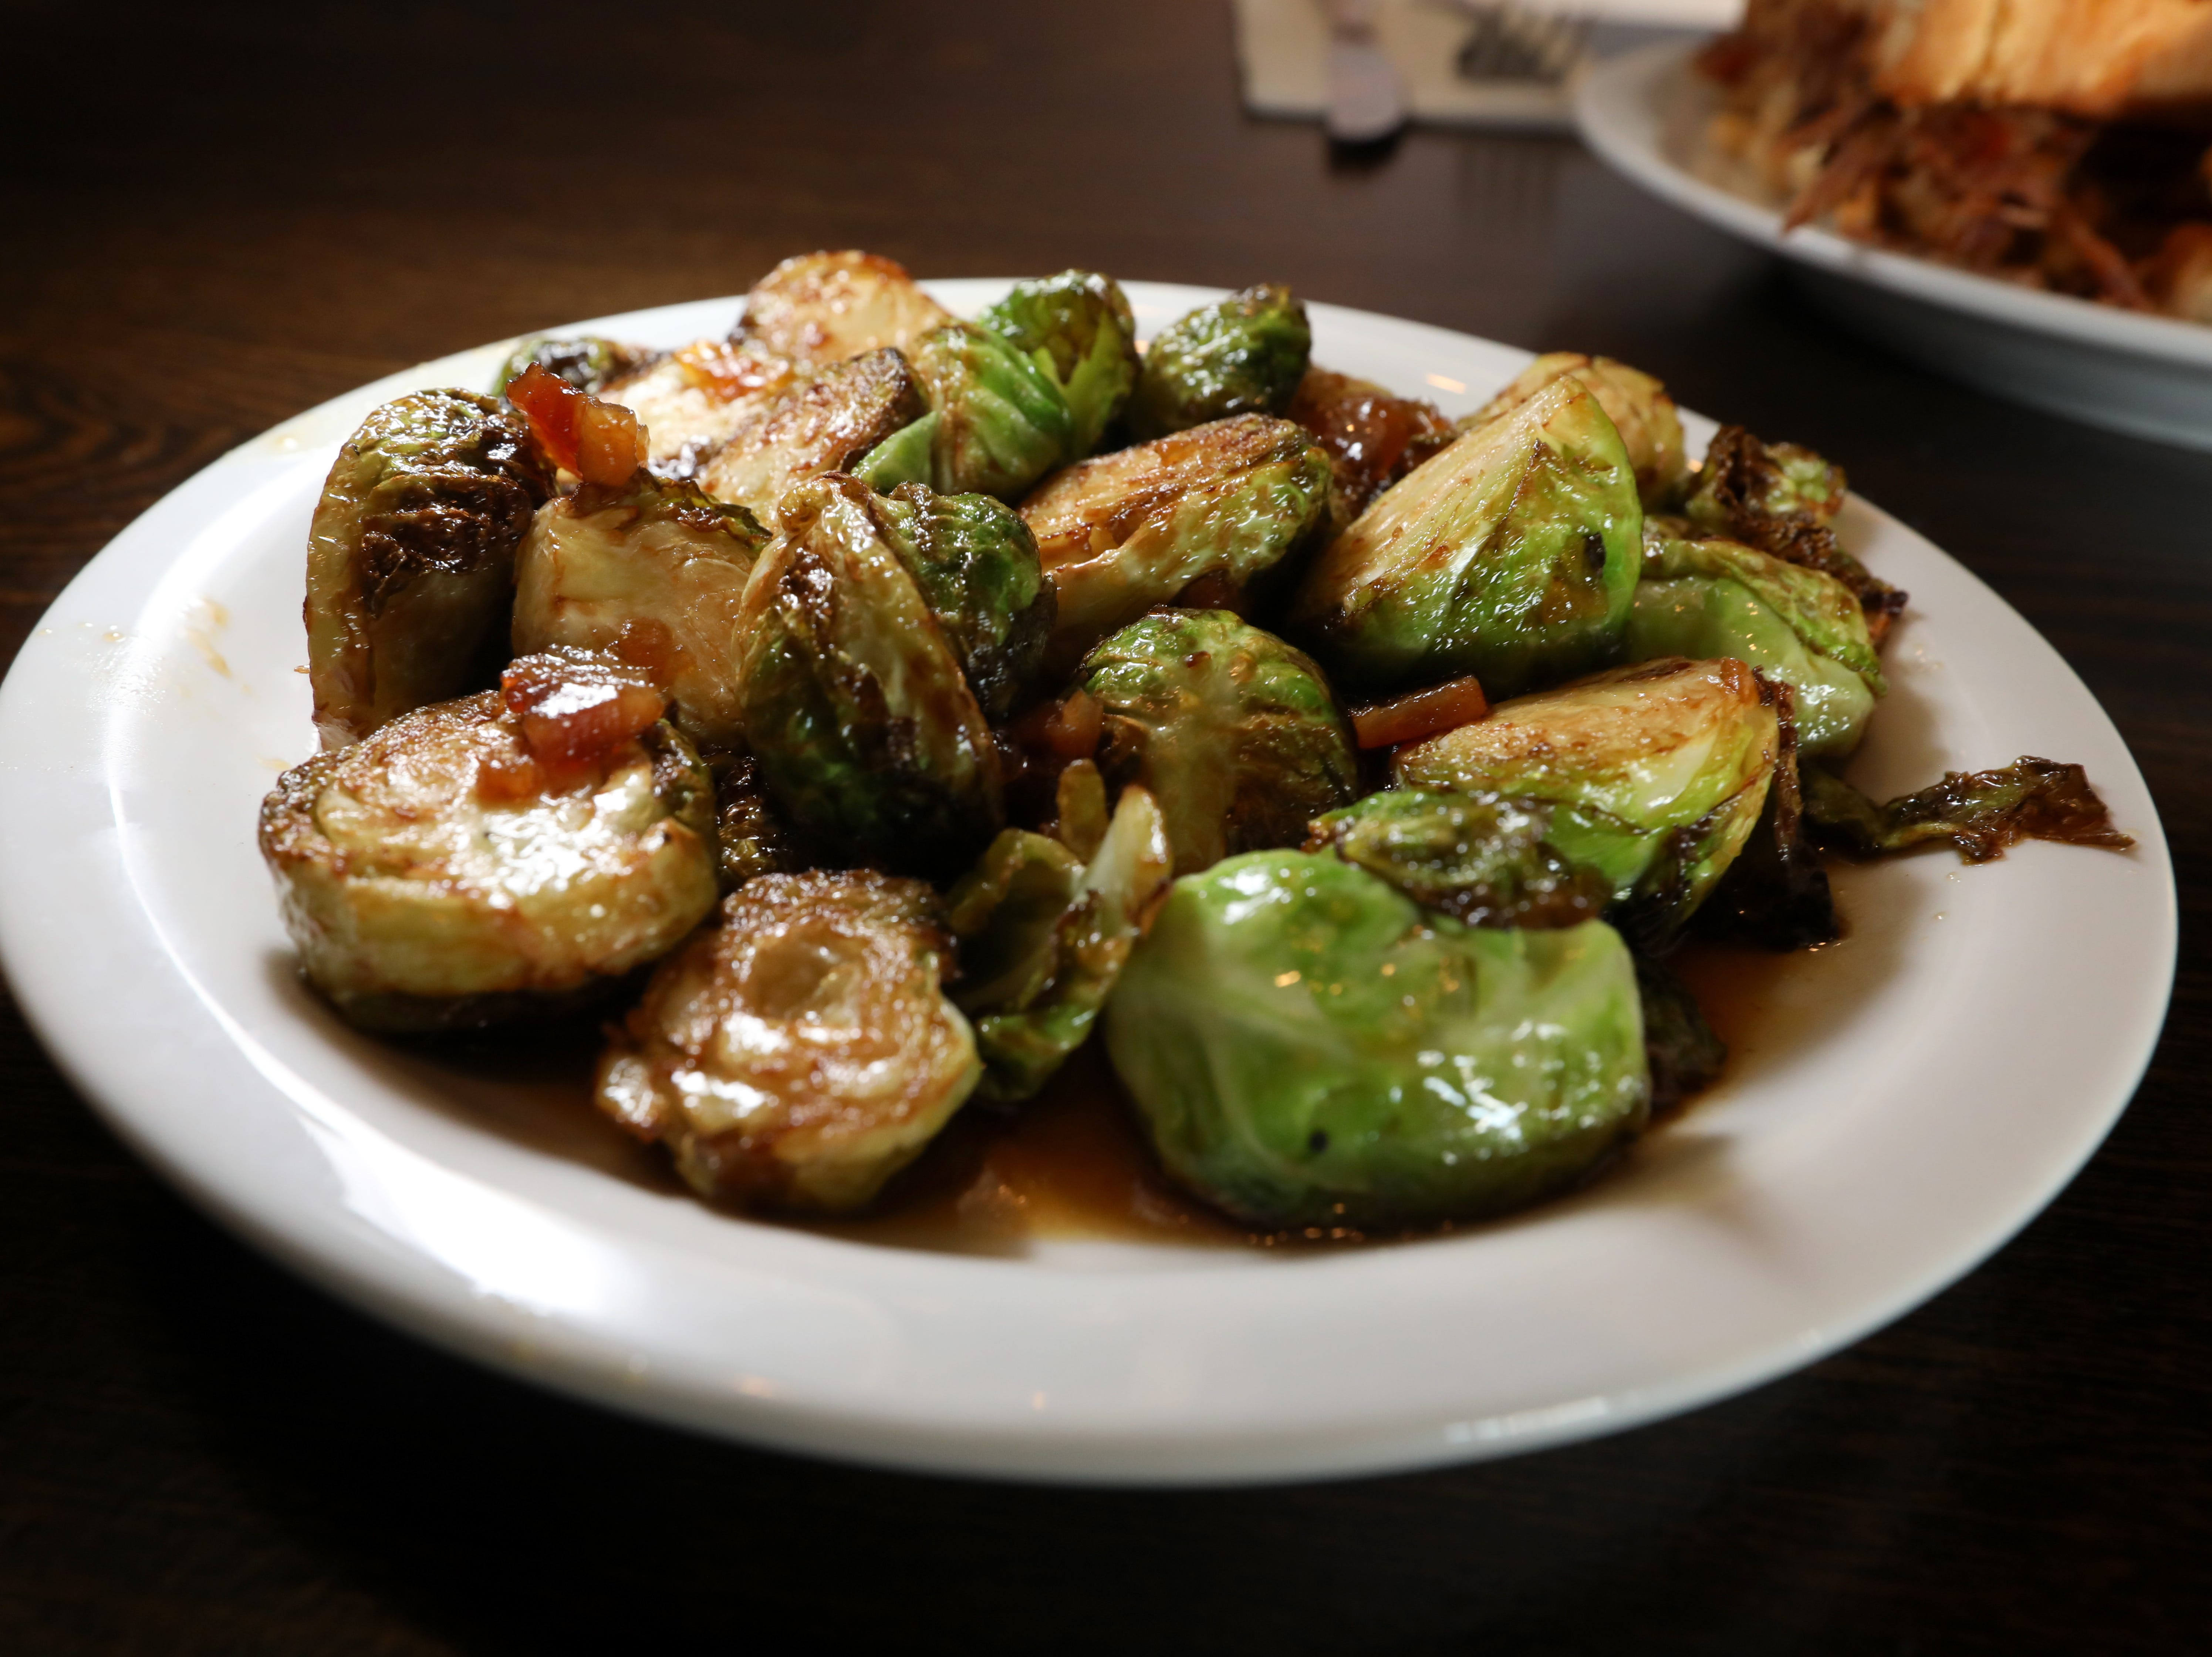 Brussel sprouts at the Foggy Bottom Tavern in New City Oct. 12, 2018.